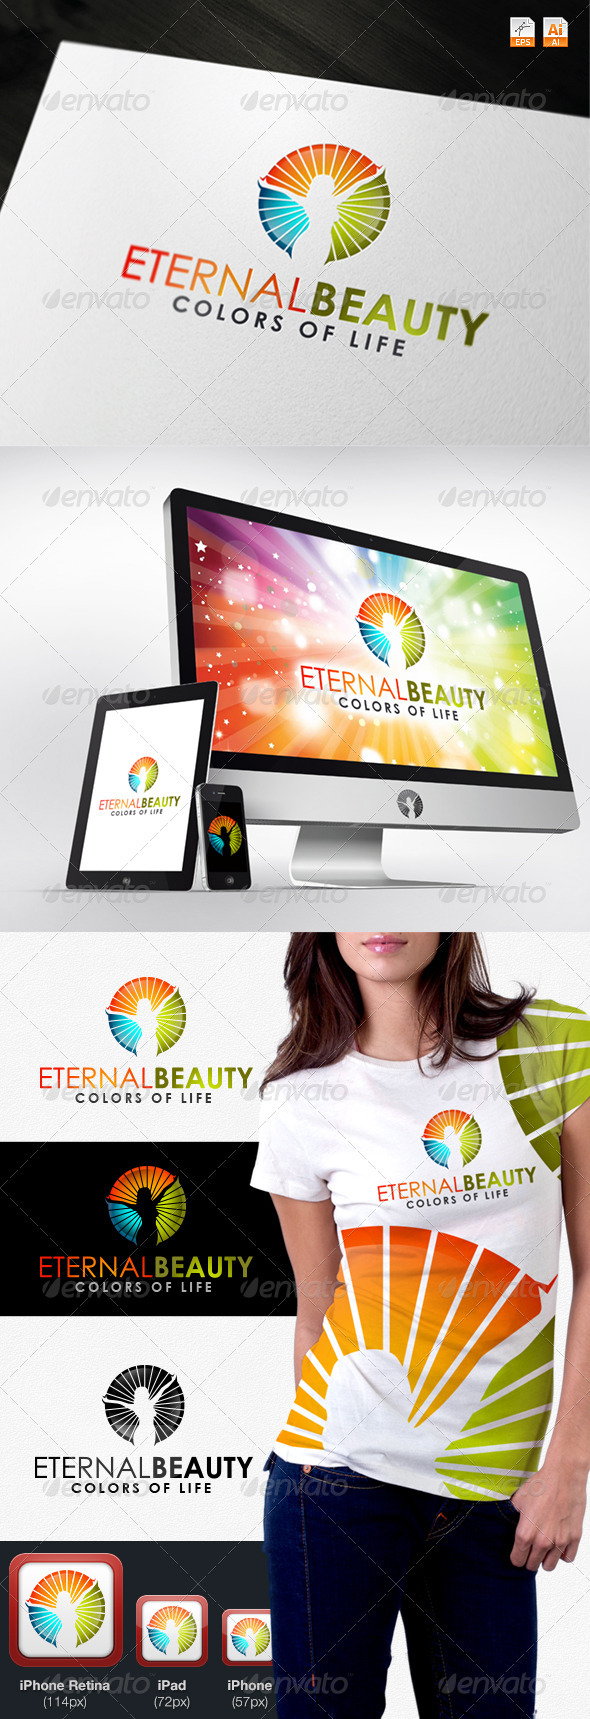 Eternal Beauty - Colors of Life Logo - Humans Logo Templates